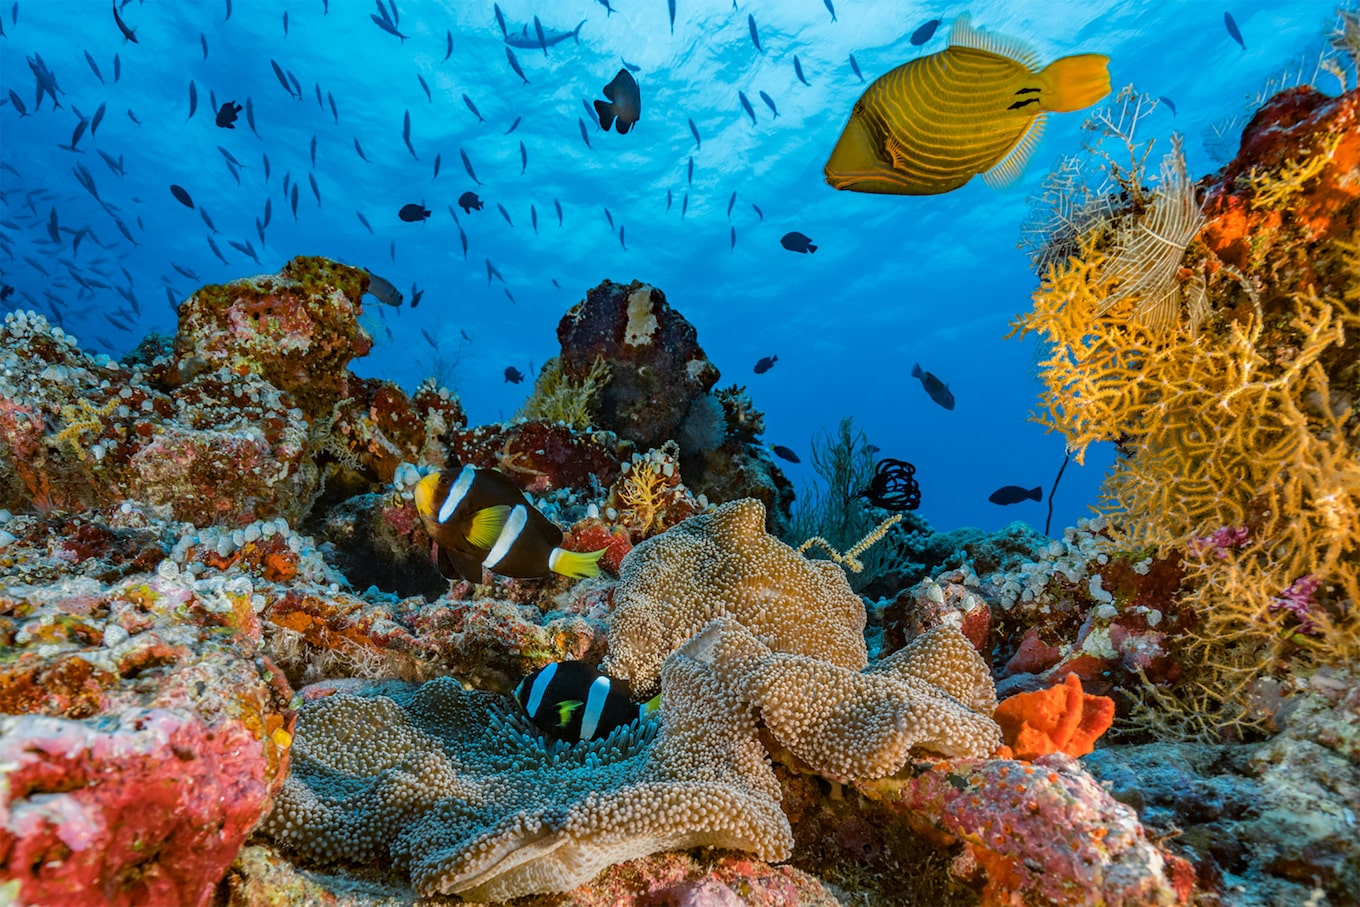 alexis rosenfeld sony alpha 7r2-vivid view of the sea bed and corals